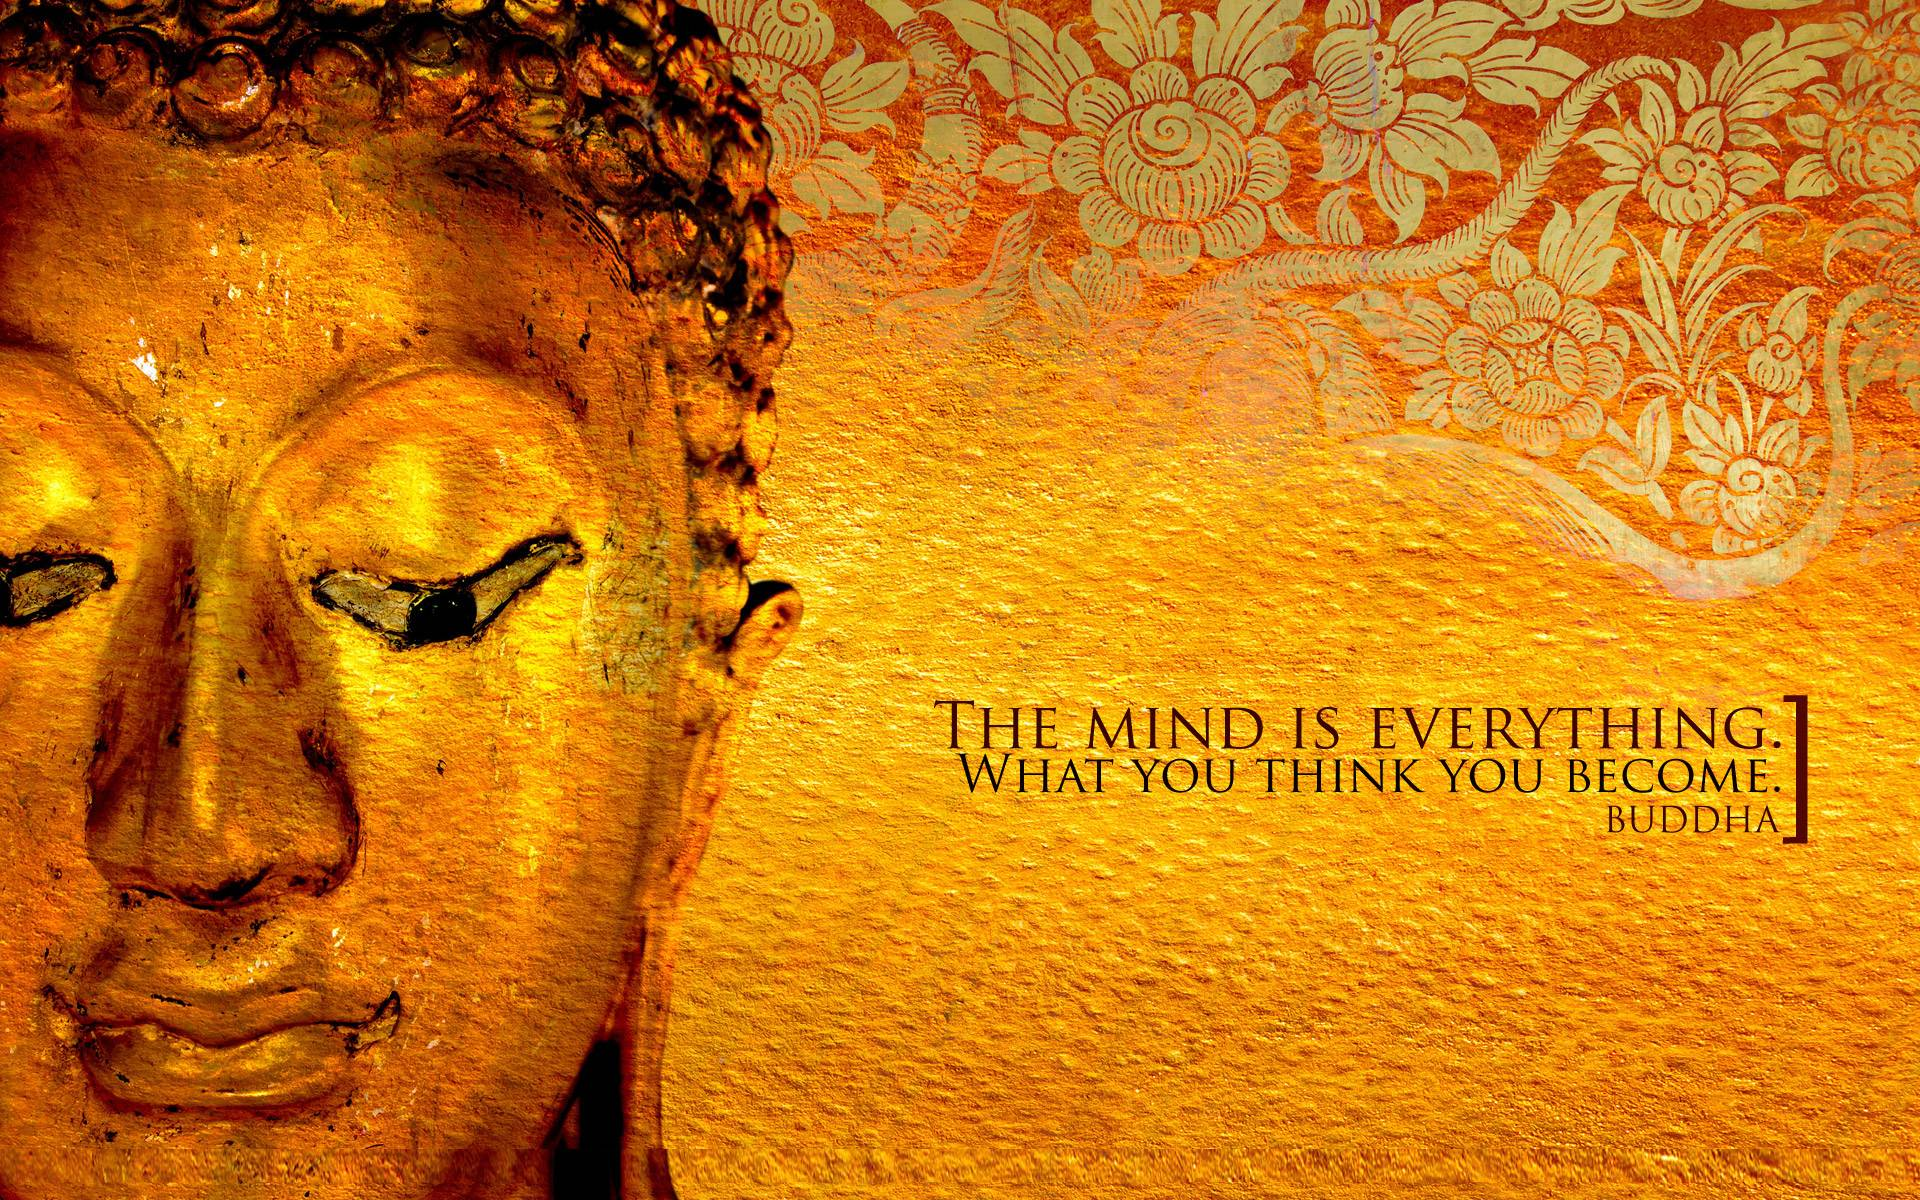 Buddhist Wallpapers Free Backgrounds Download For Android 1920x1200